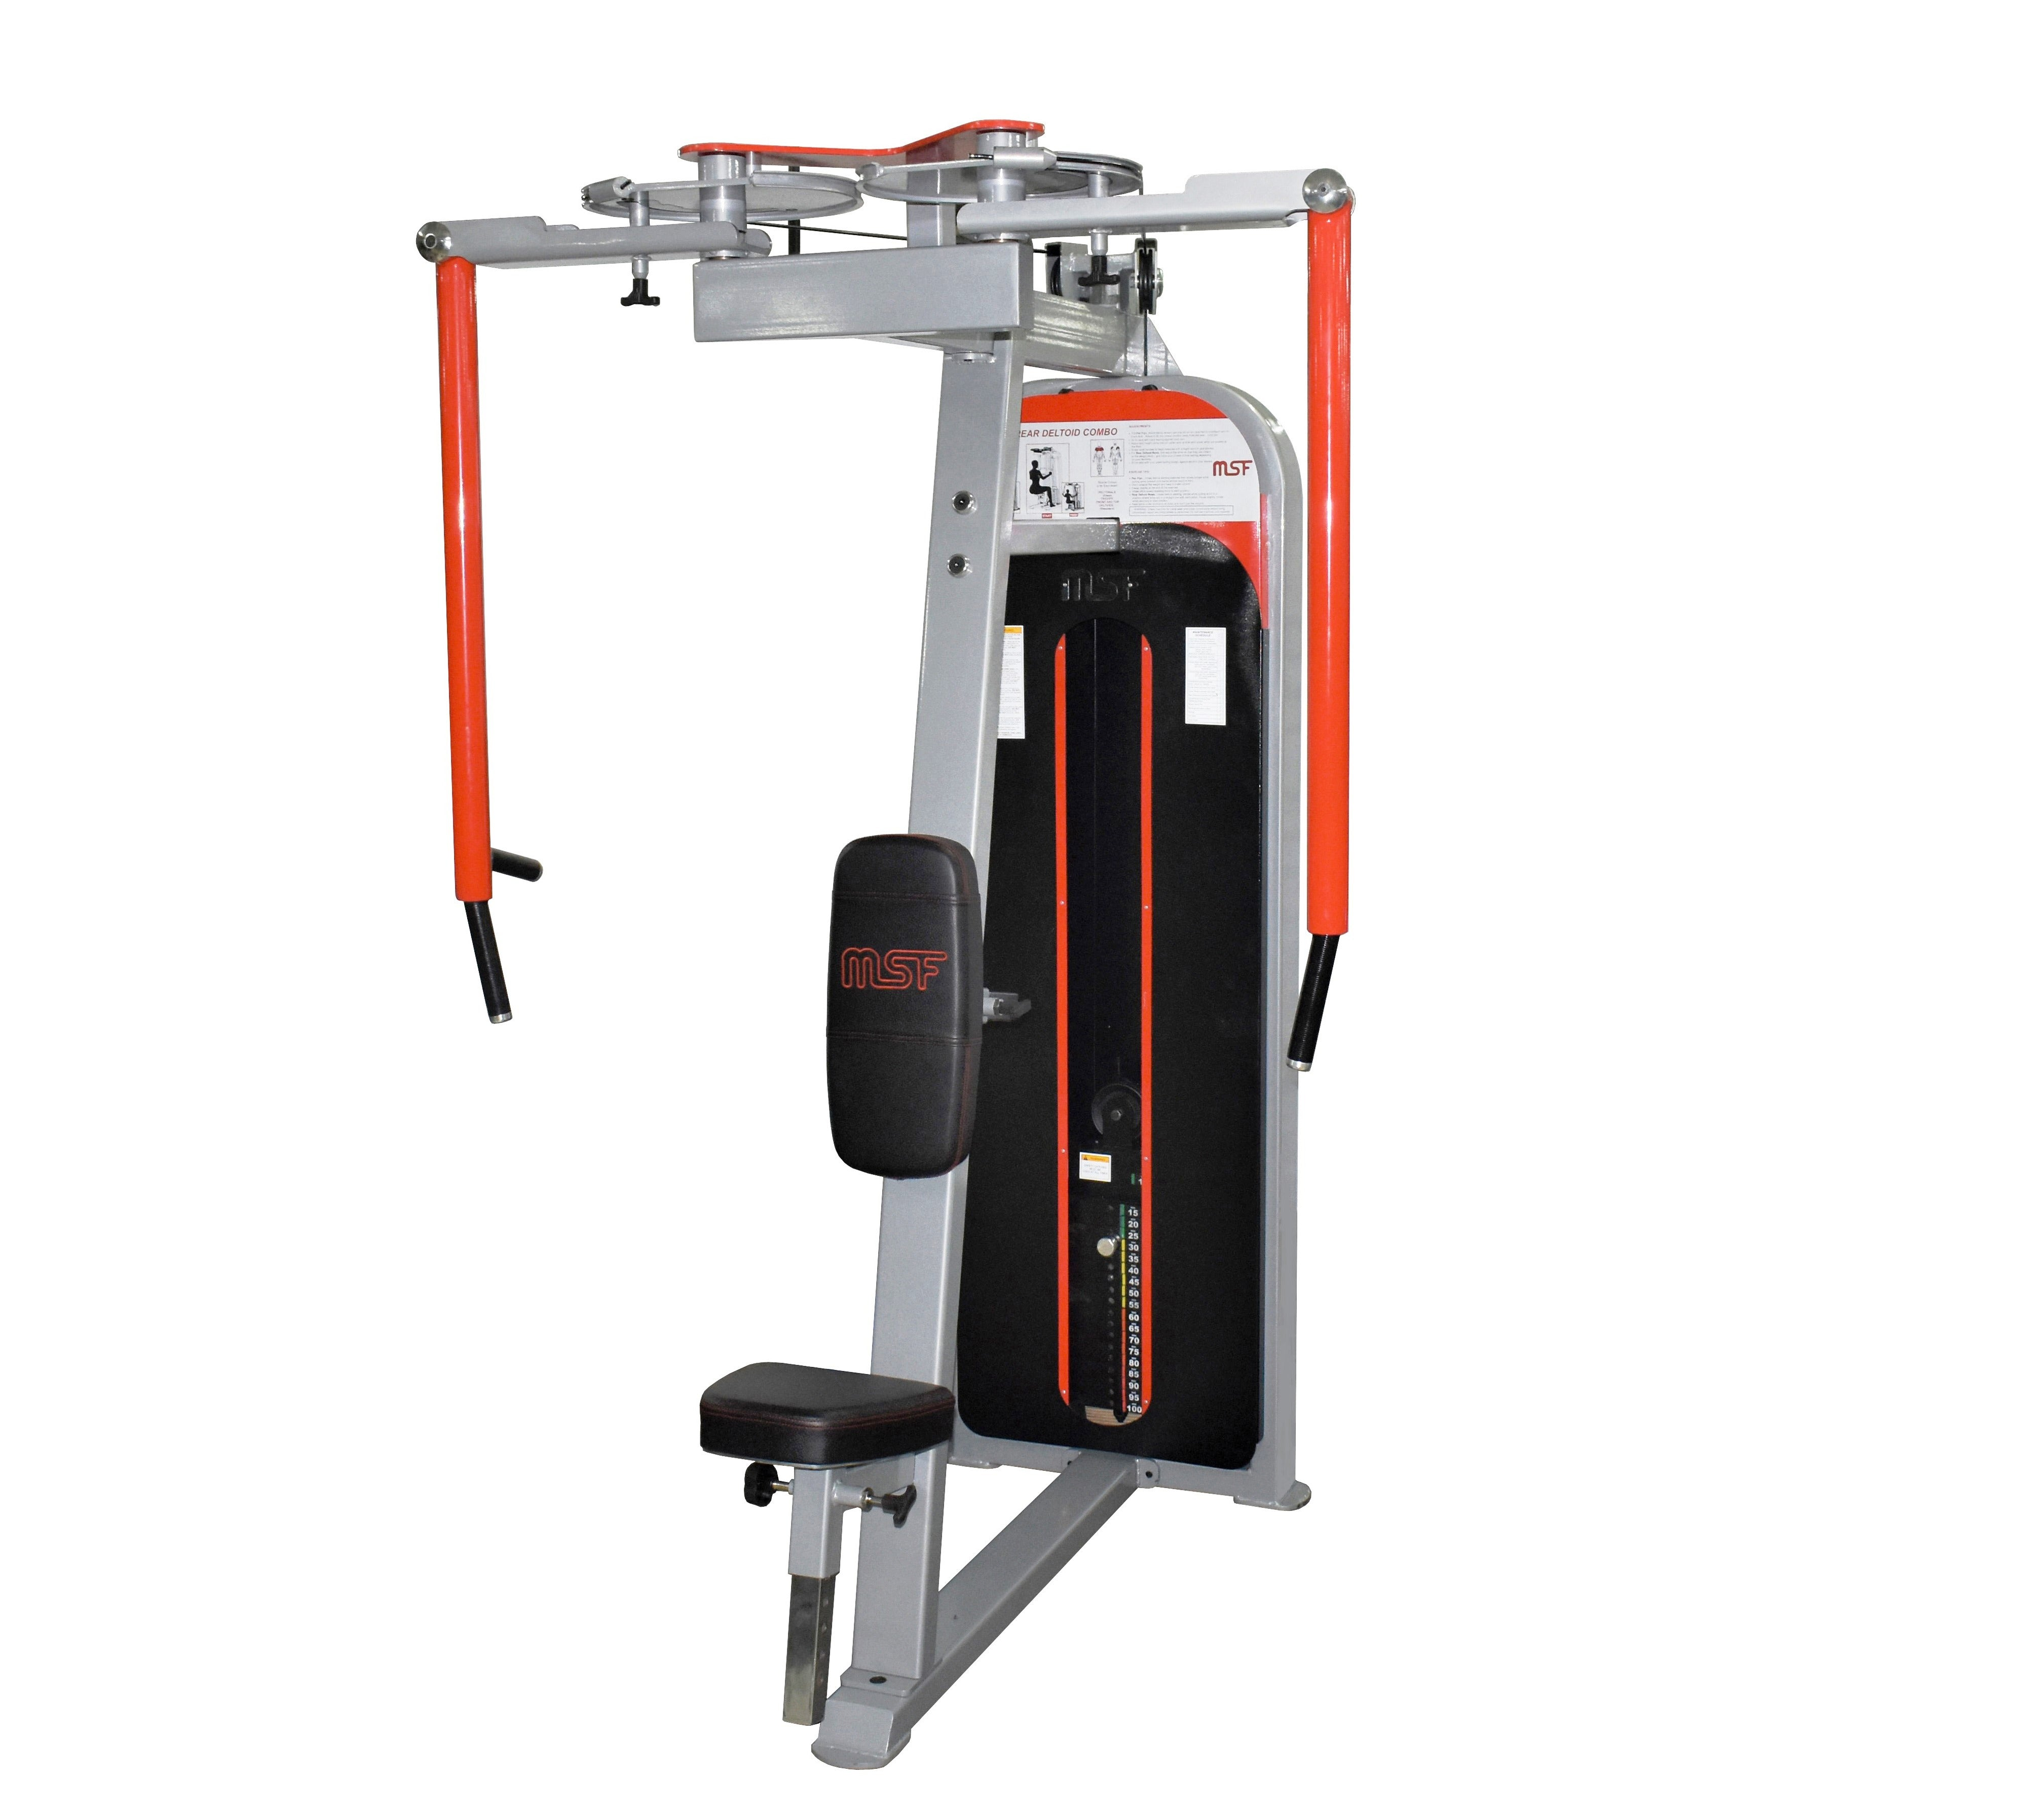 Pec fly / Rear delt machine